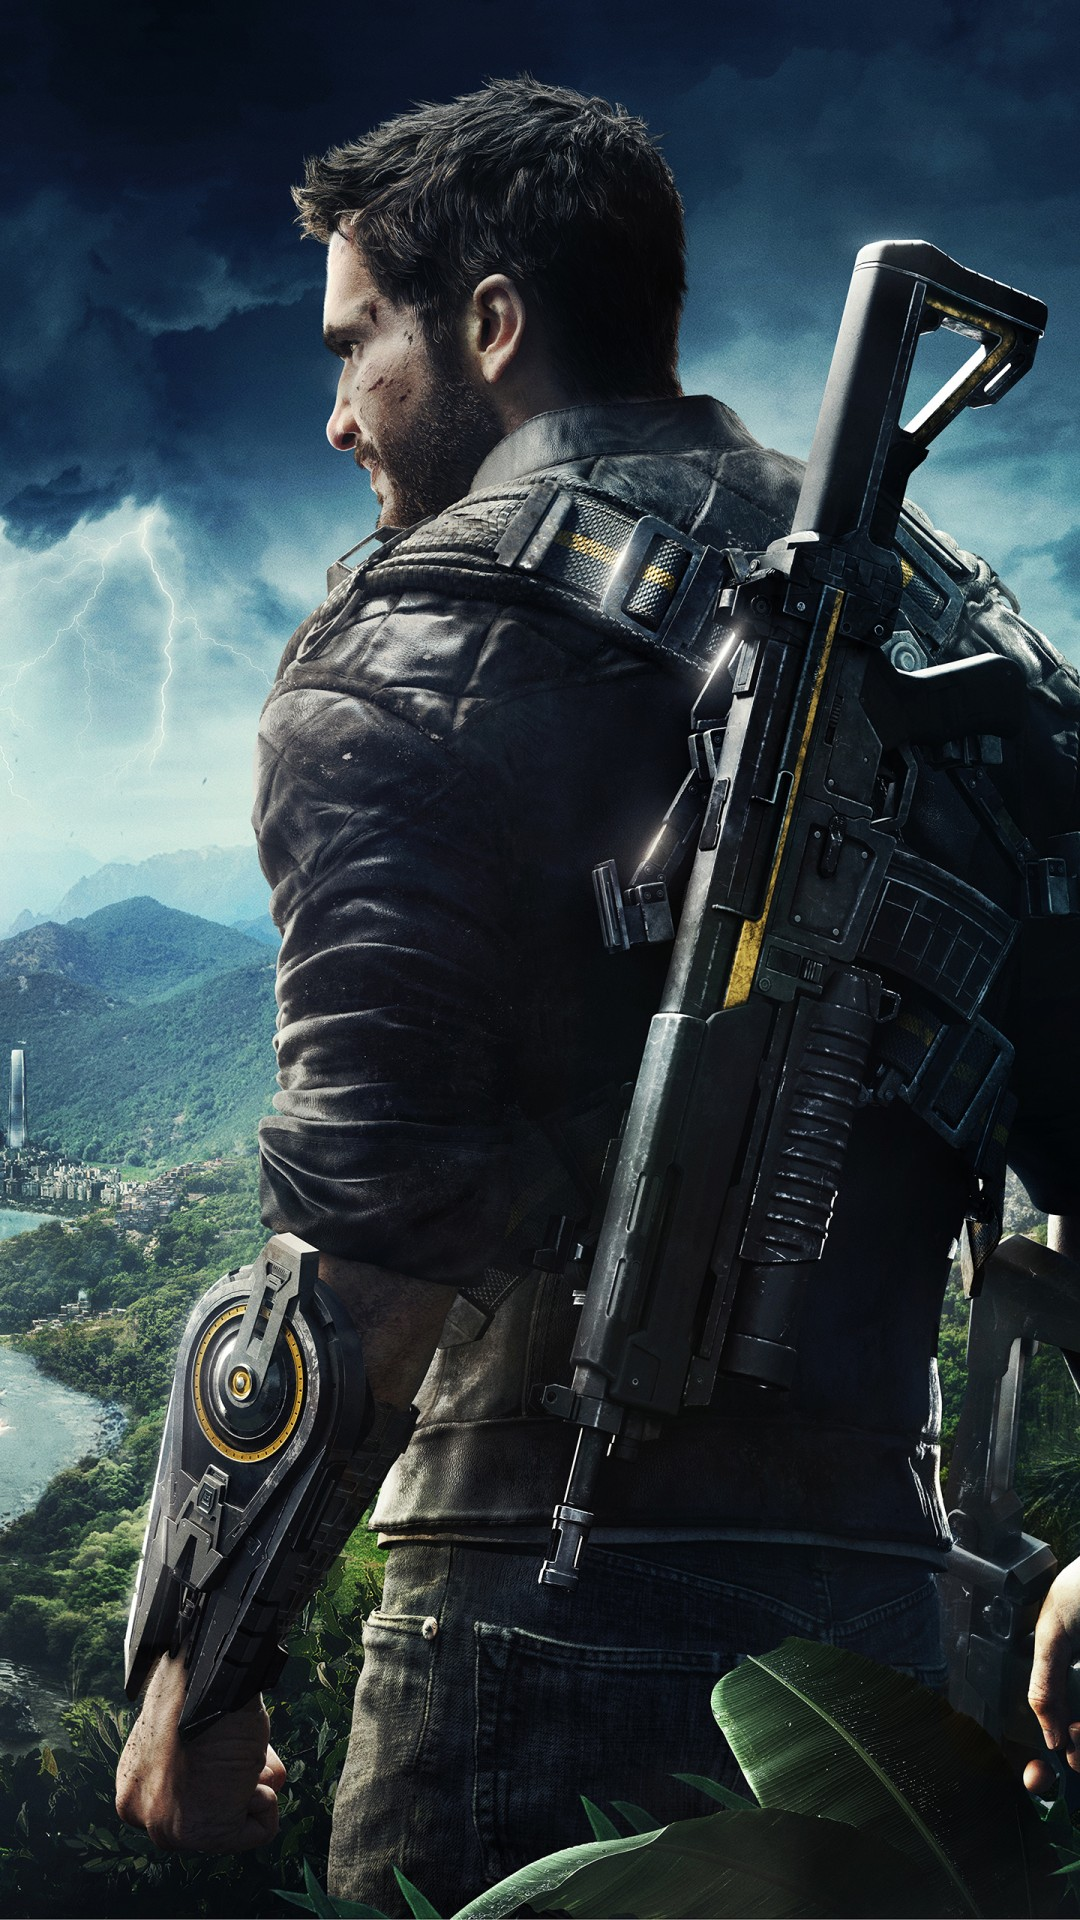 Latest Hd Wallpapers For Iphone 7 Just Cause 4 E3 2018 4k 8k Wallpapers Hd Wallpapers Id